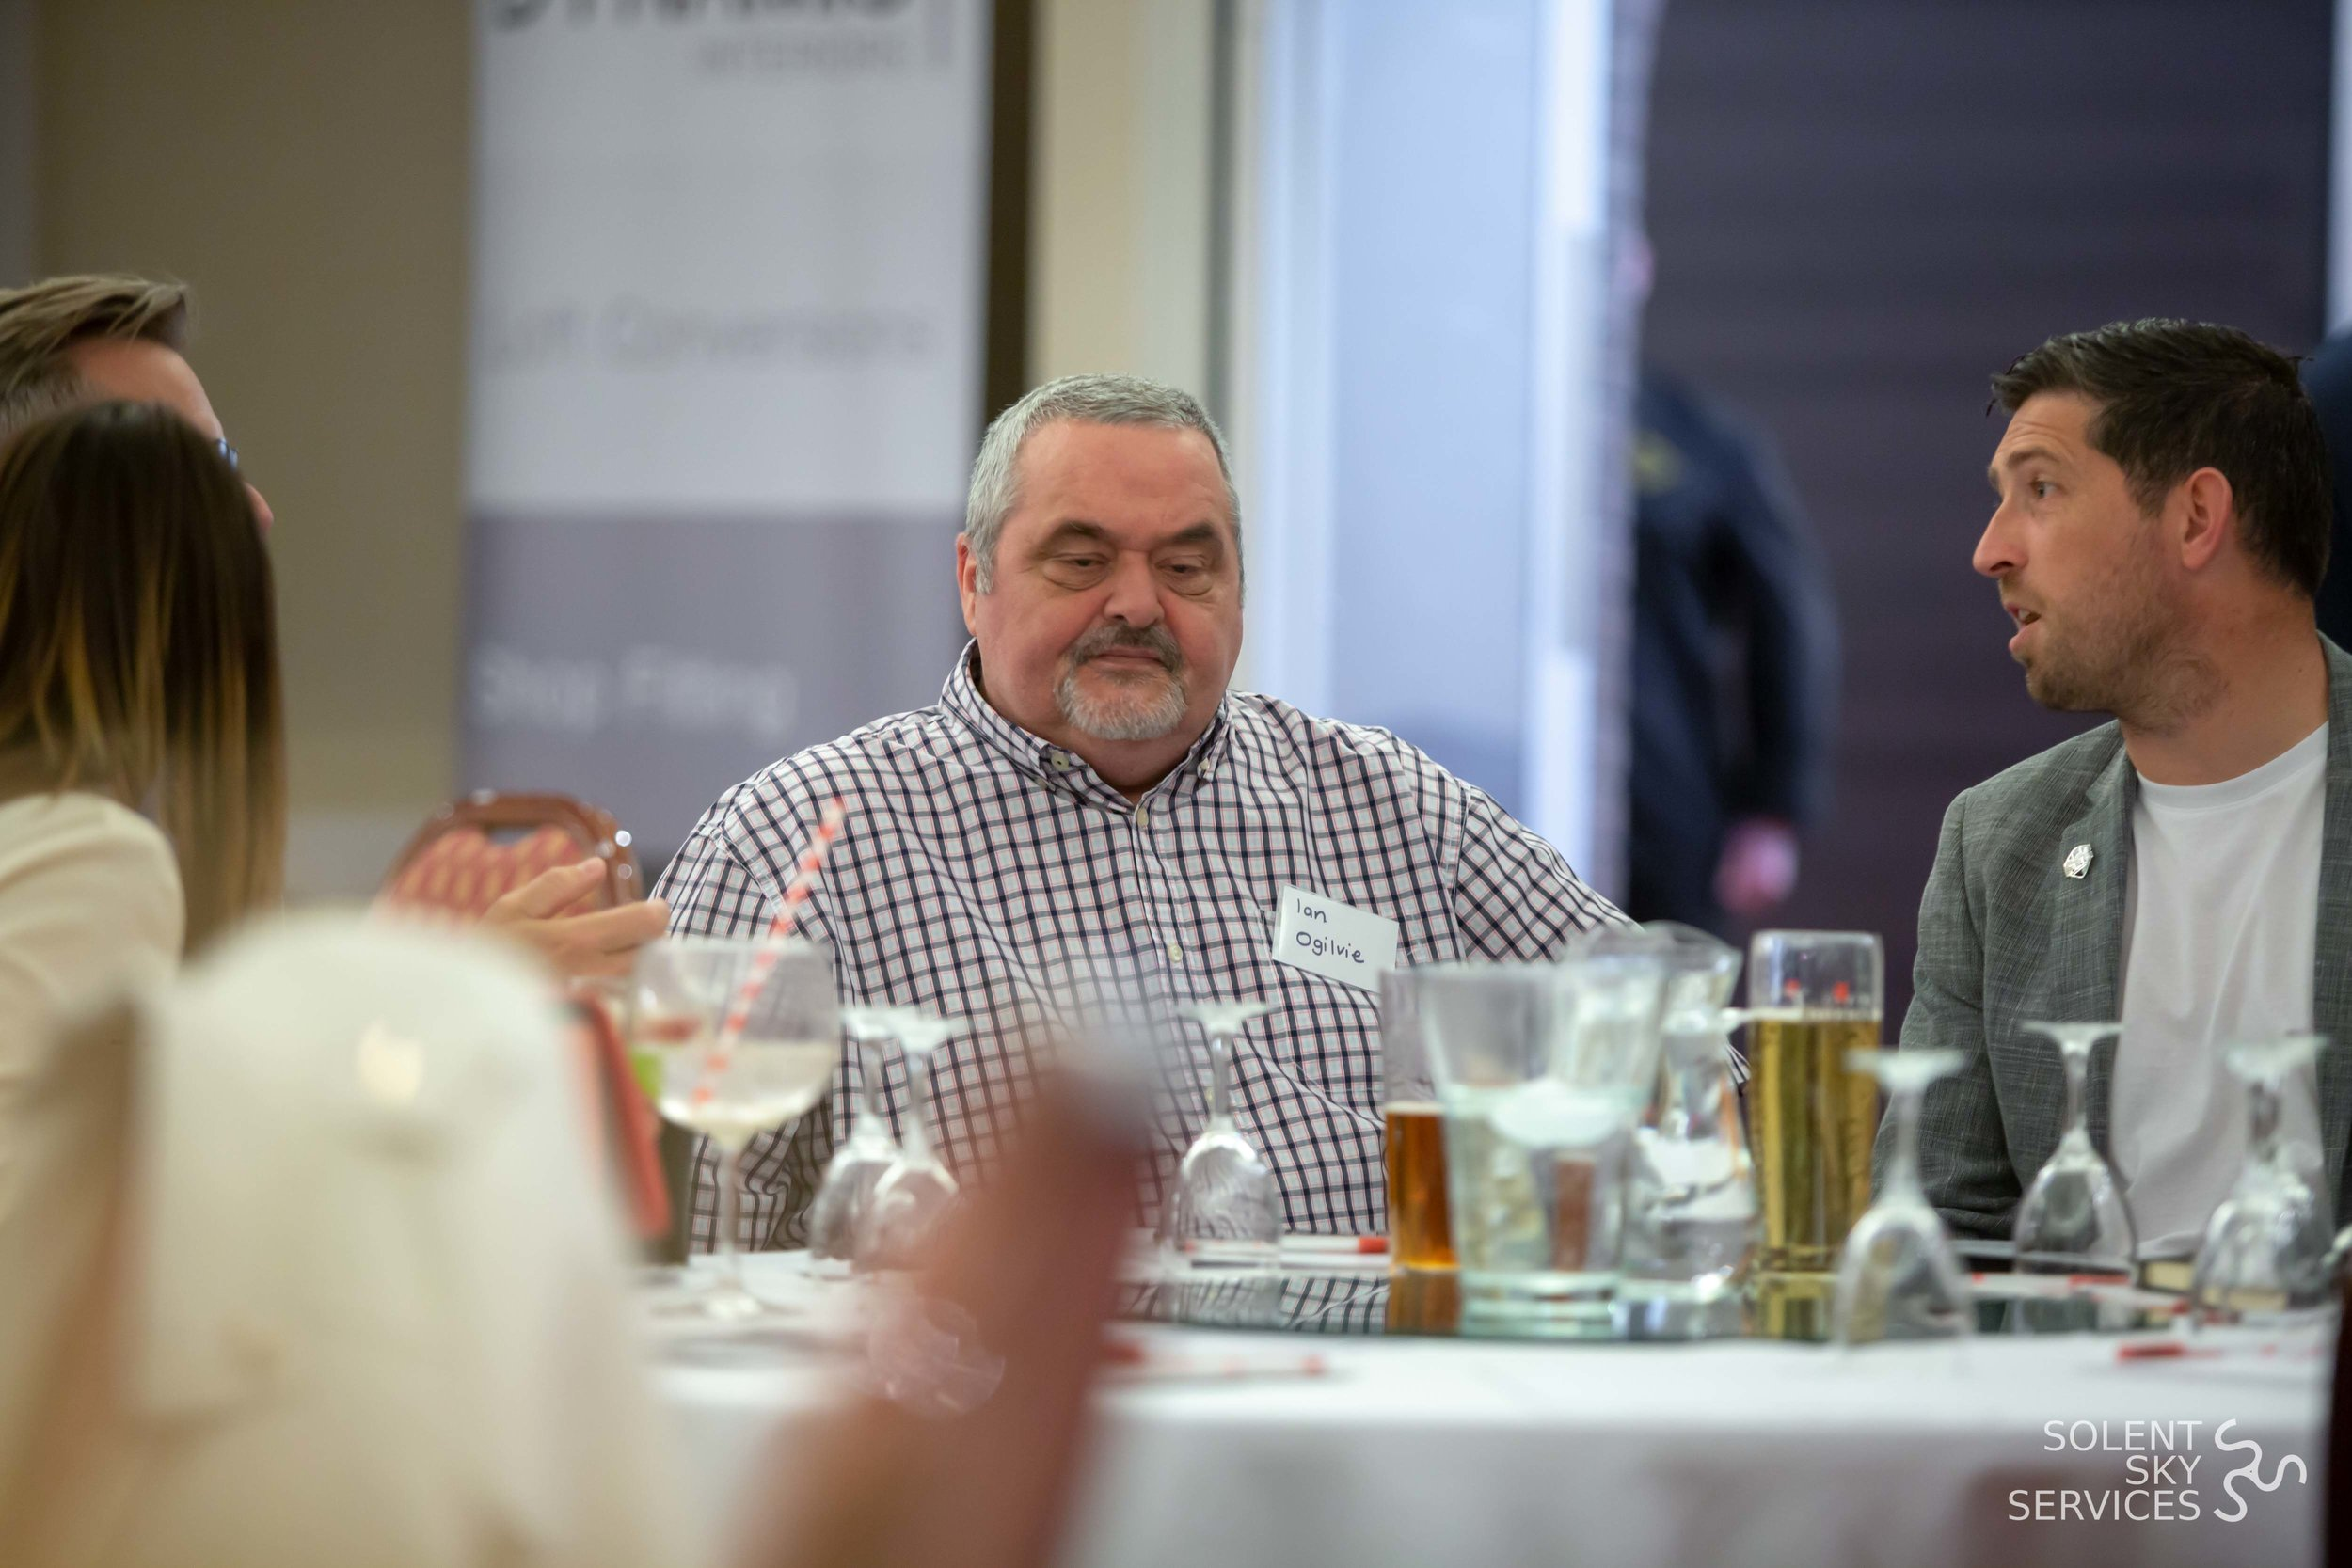 Synergy Success Networking Event #2 - Solent Sky Services-9.JPG